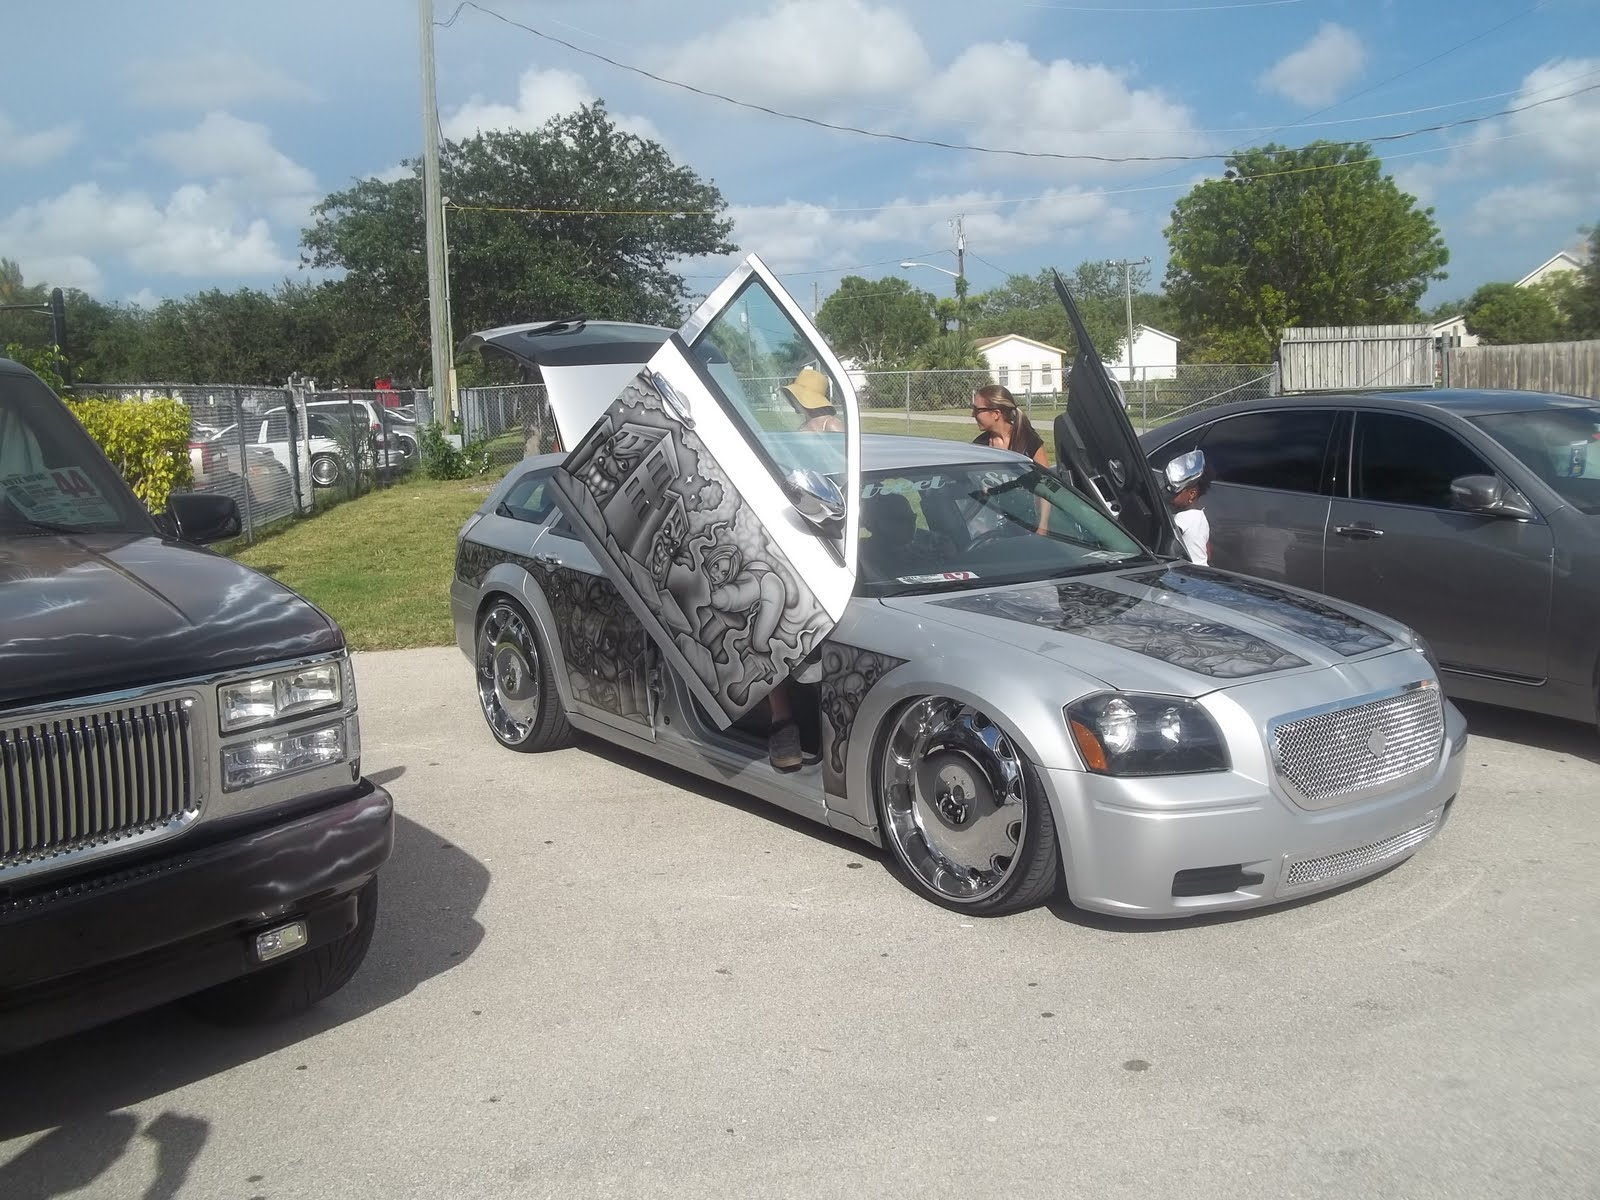 PHOTOGRAPHY BY MIAMIEARL: X102.3 car show in Palm Beach county